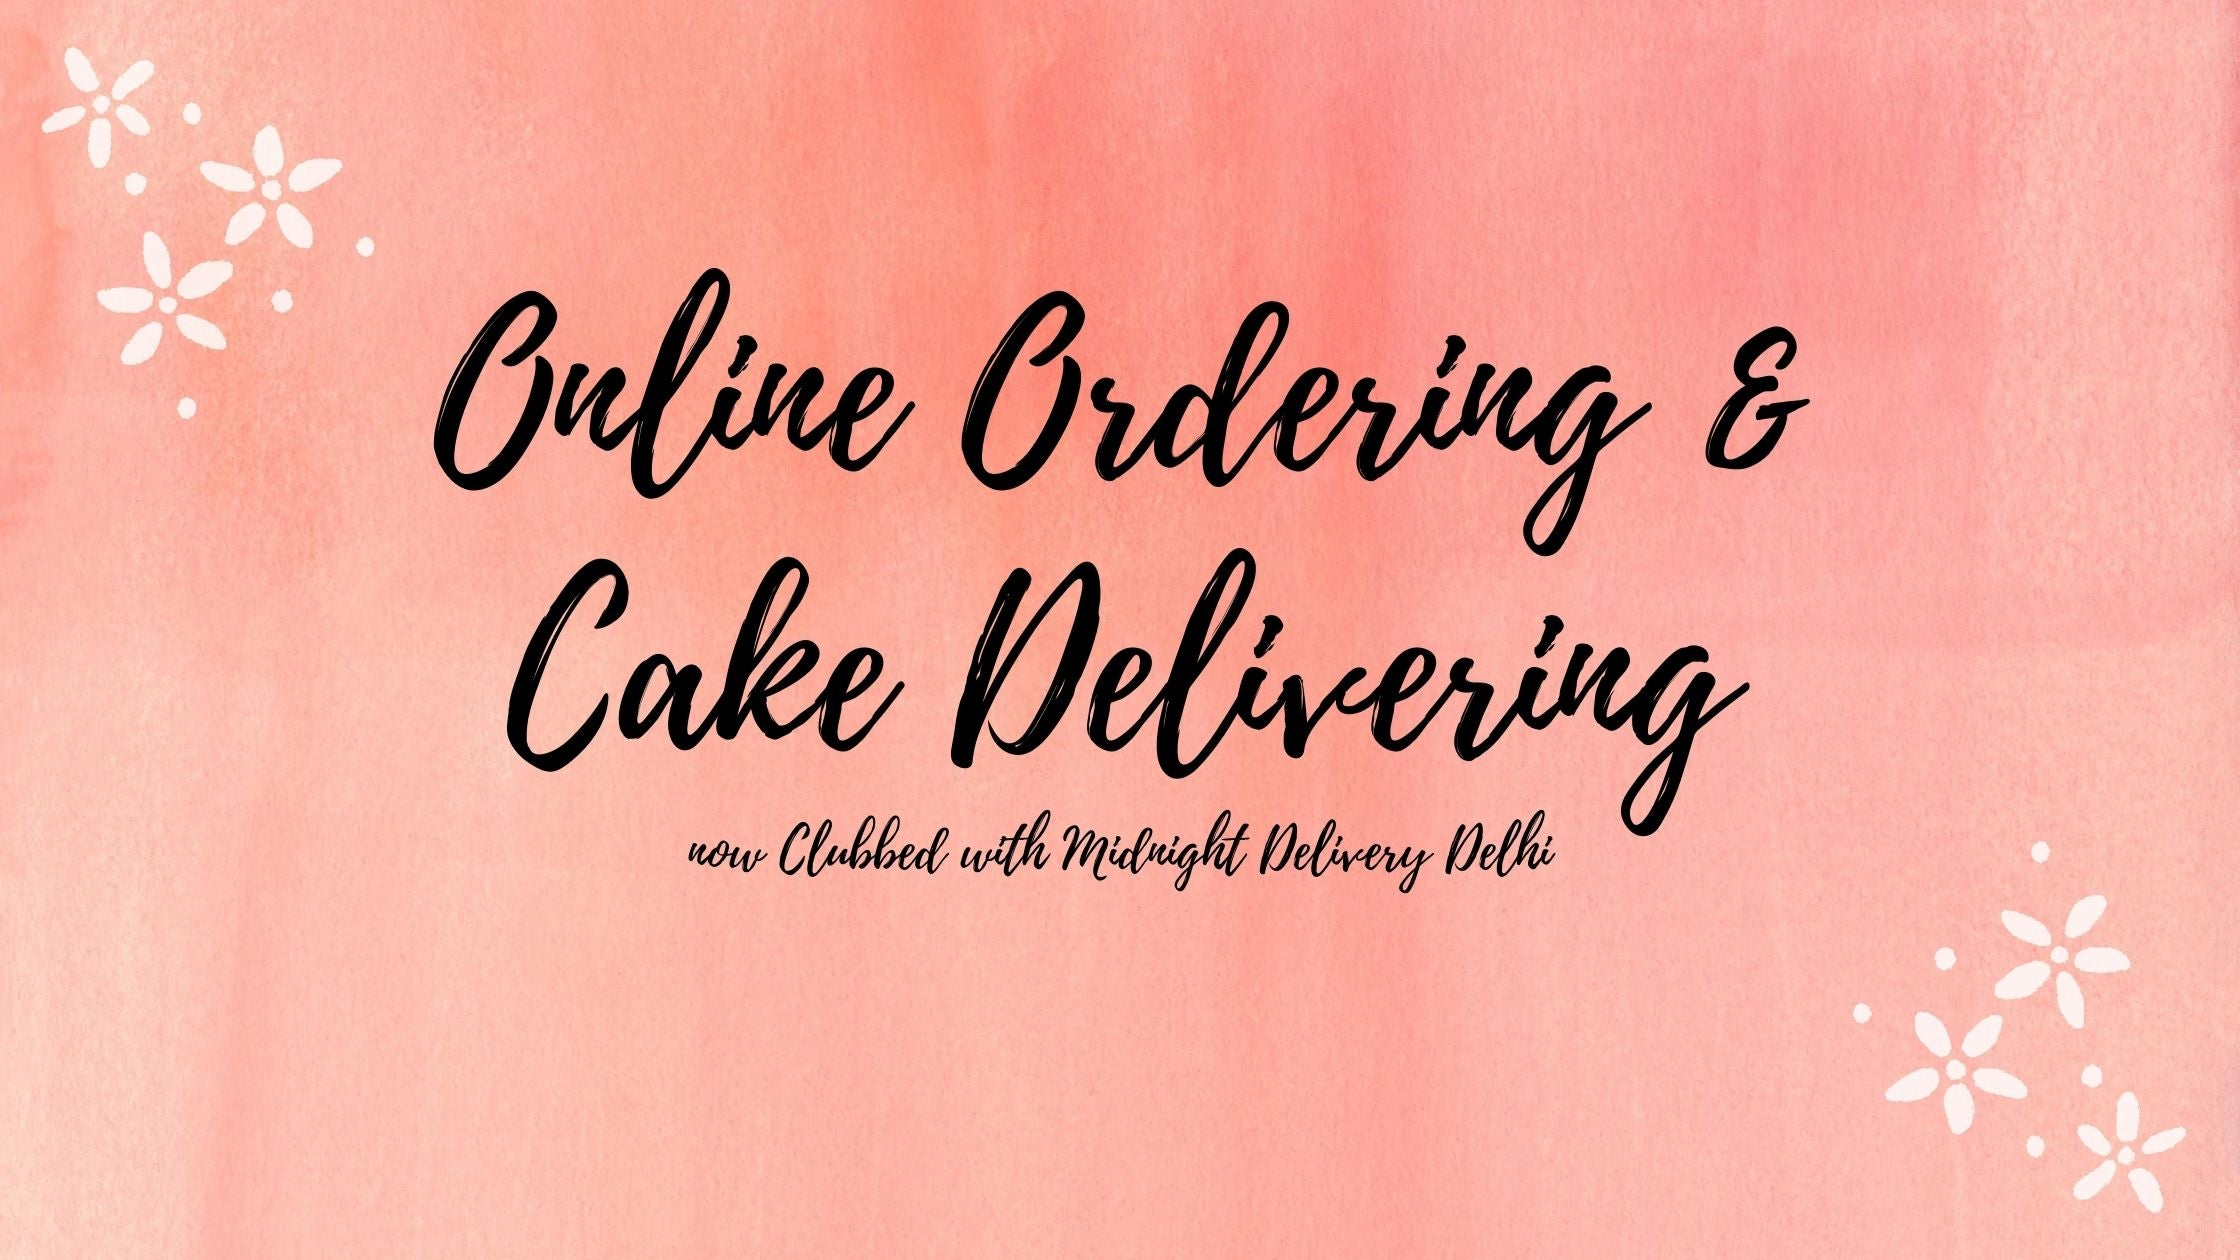 Online Ordering & Cake Delivering now Clubbed with Midnight Delivery Delhi